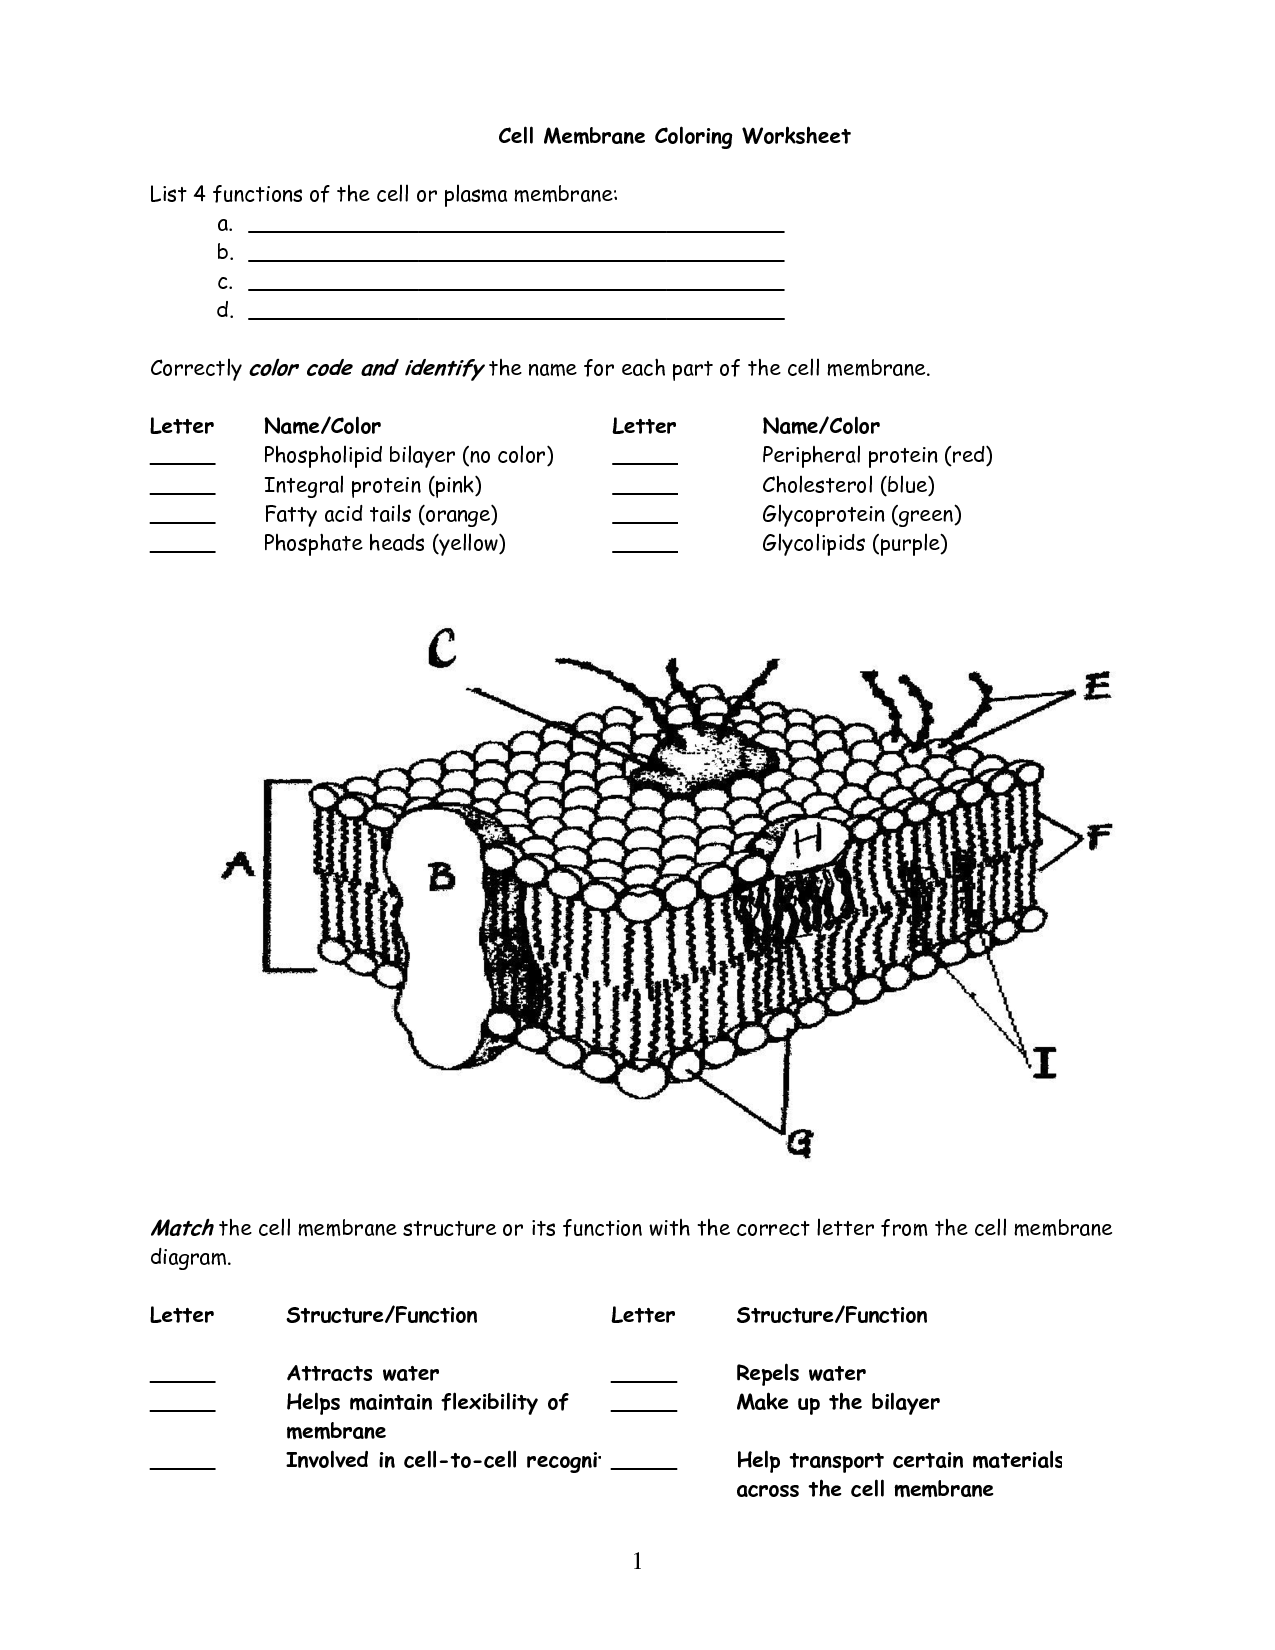 cell membrane worksheet Google Search – Cell Membrane Coloring Worksheet